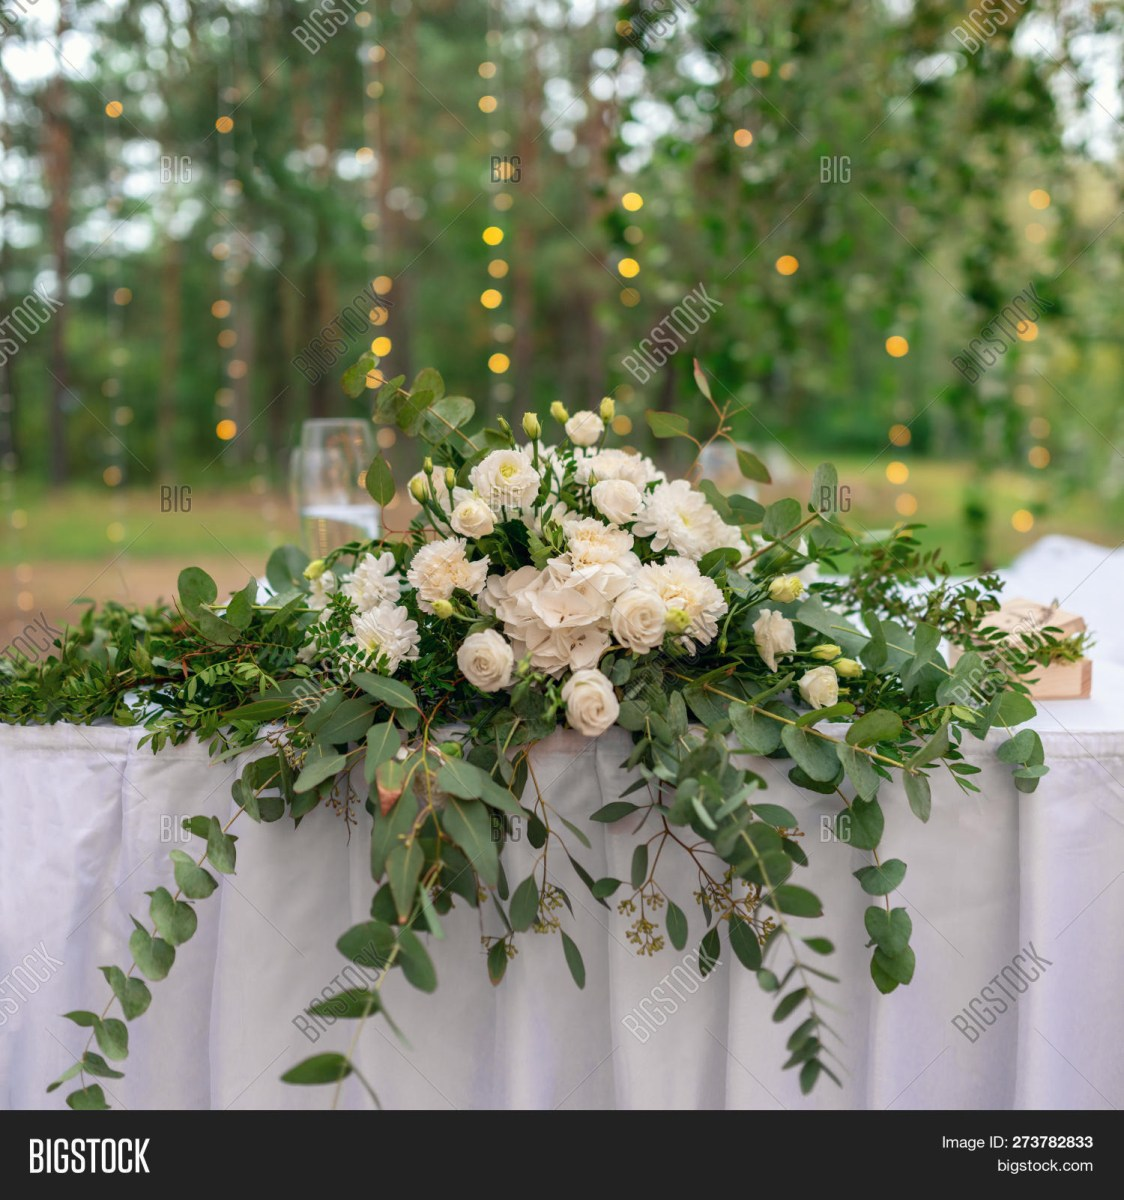 Elegant Wedding Decor Wedding Decor Table Image Photo Free Trial Bigstock